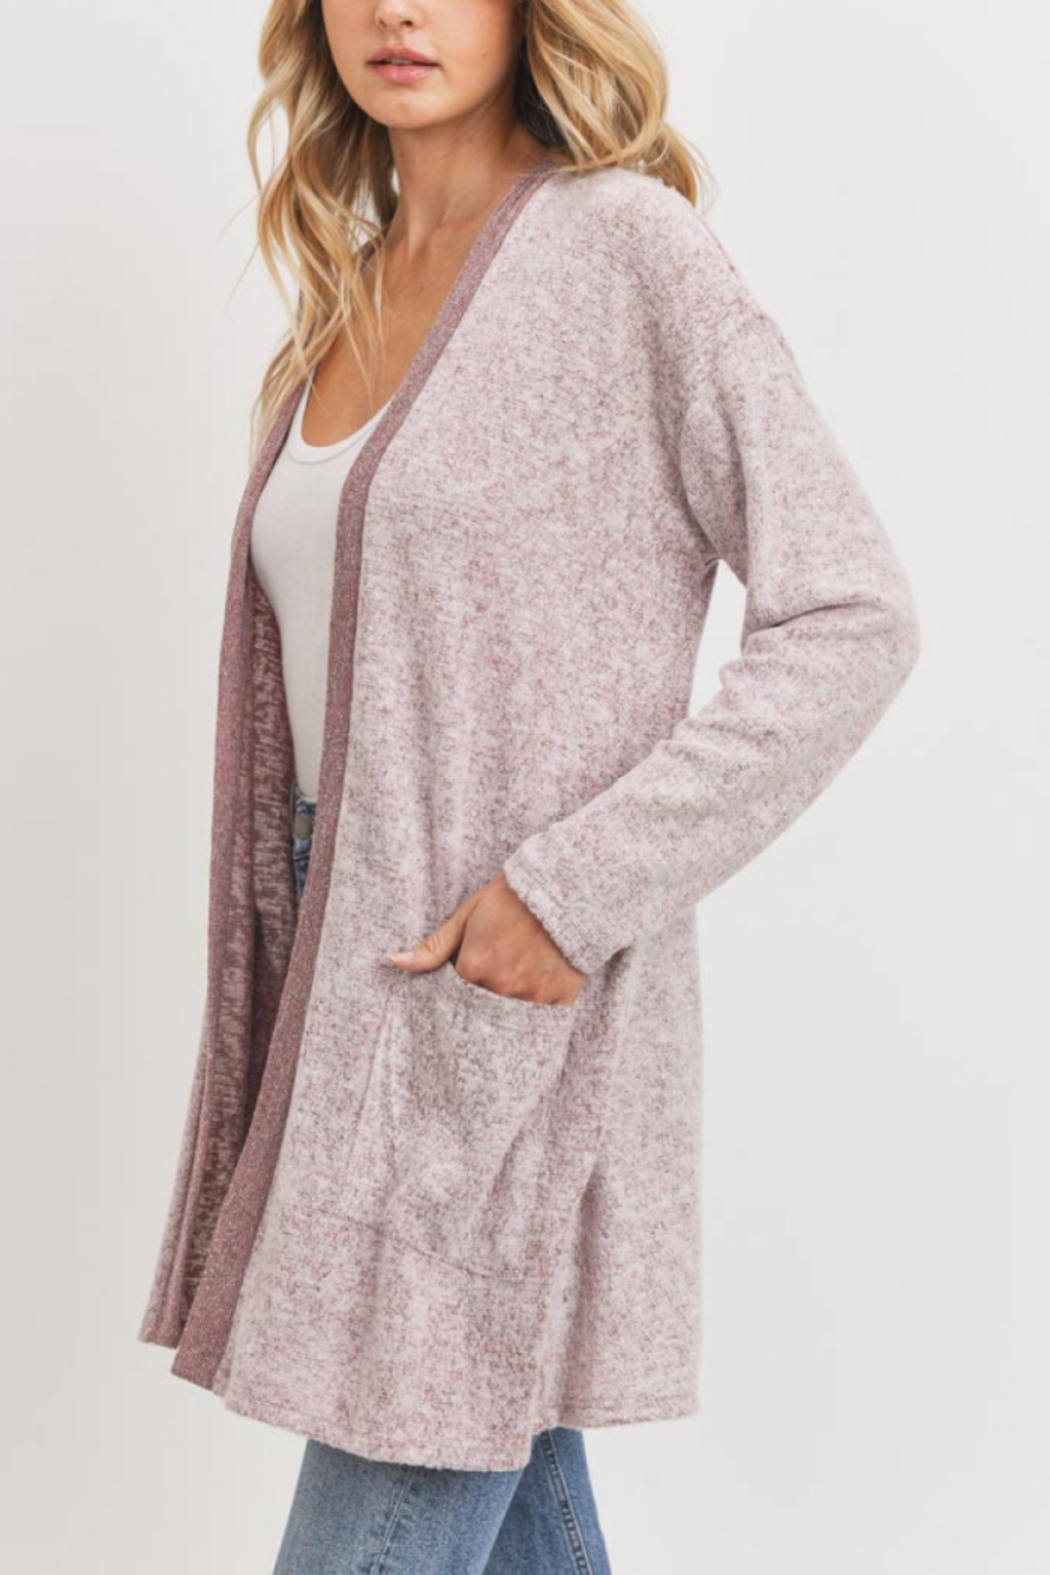 Lyn-Maree's  Super Soft Trimmed Cardi - Main Image